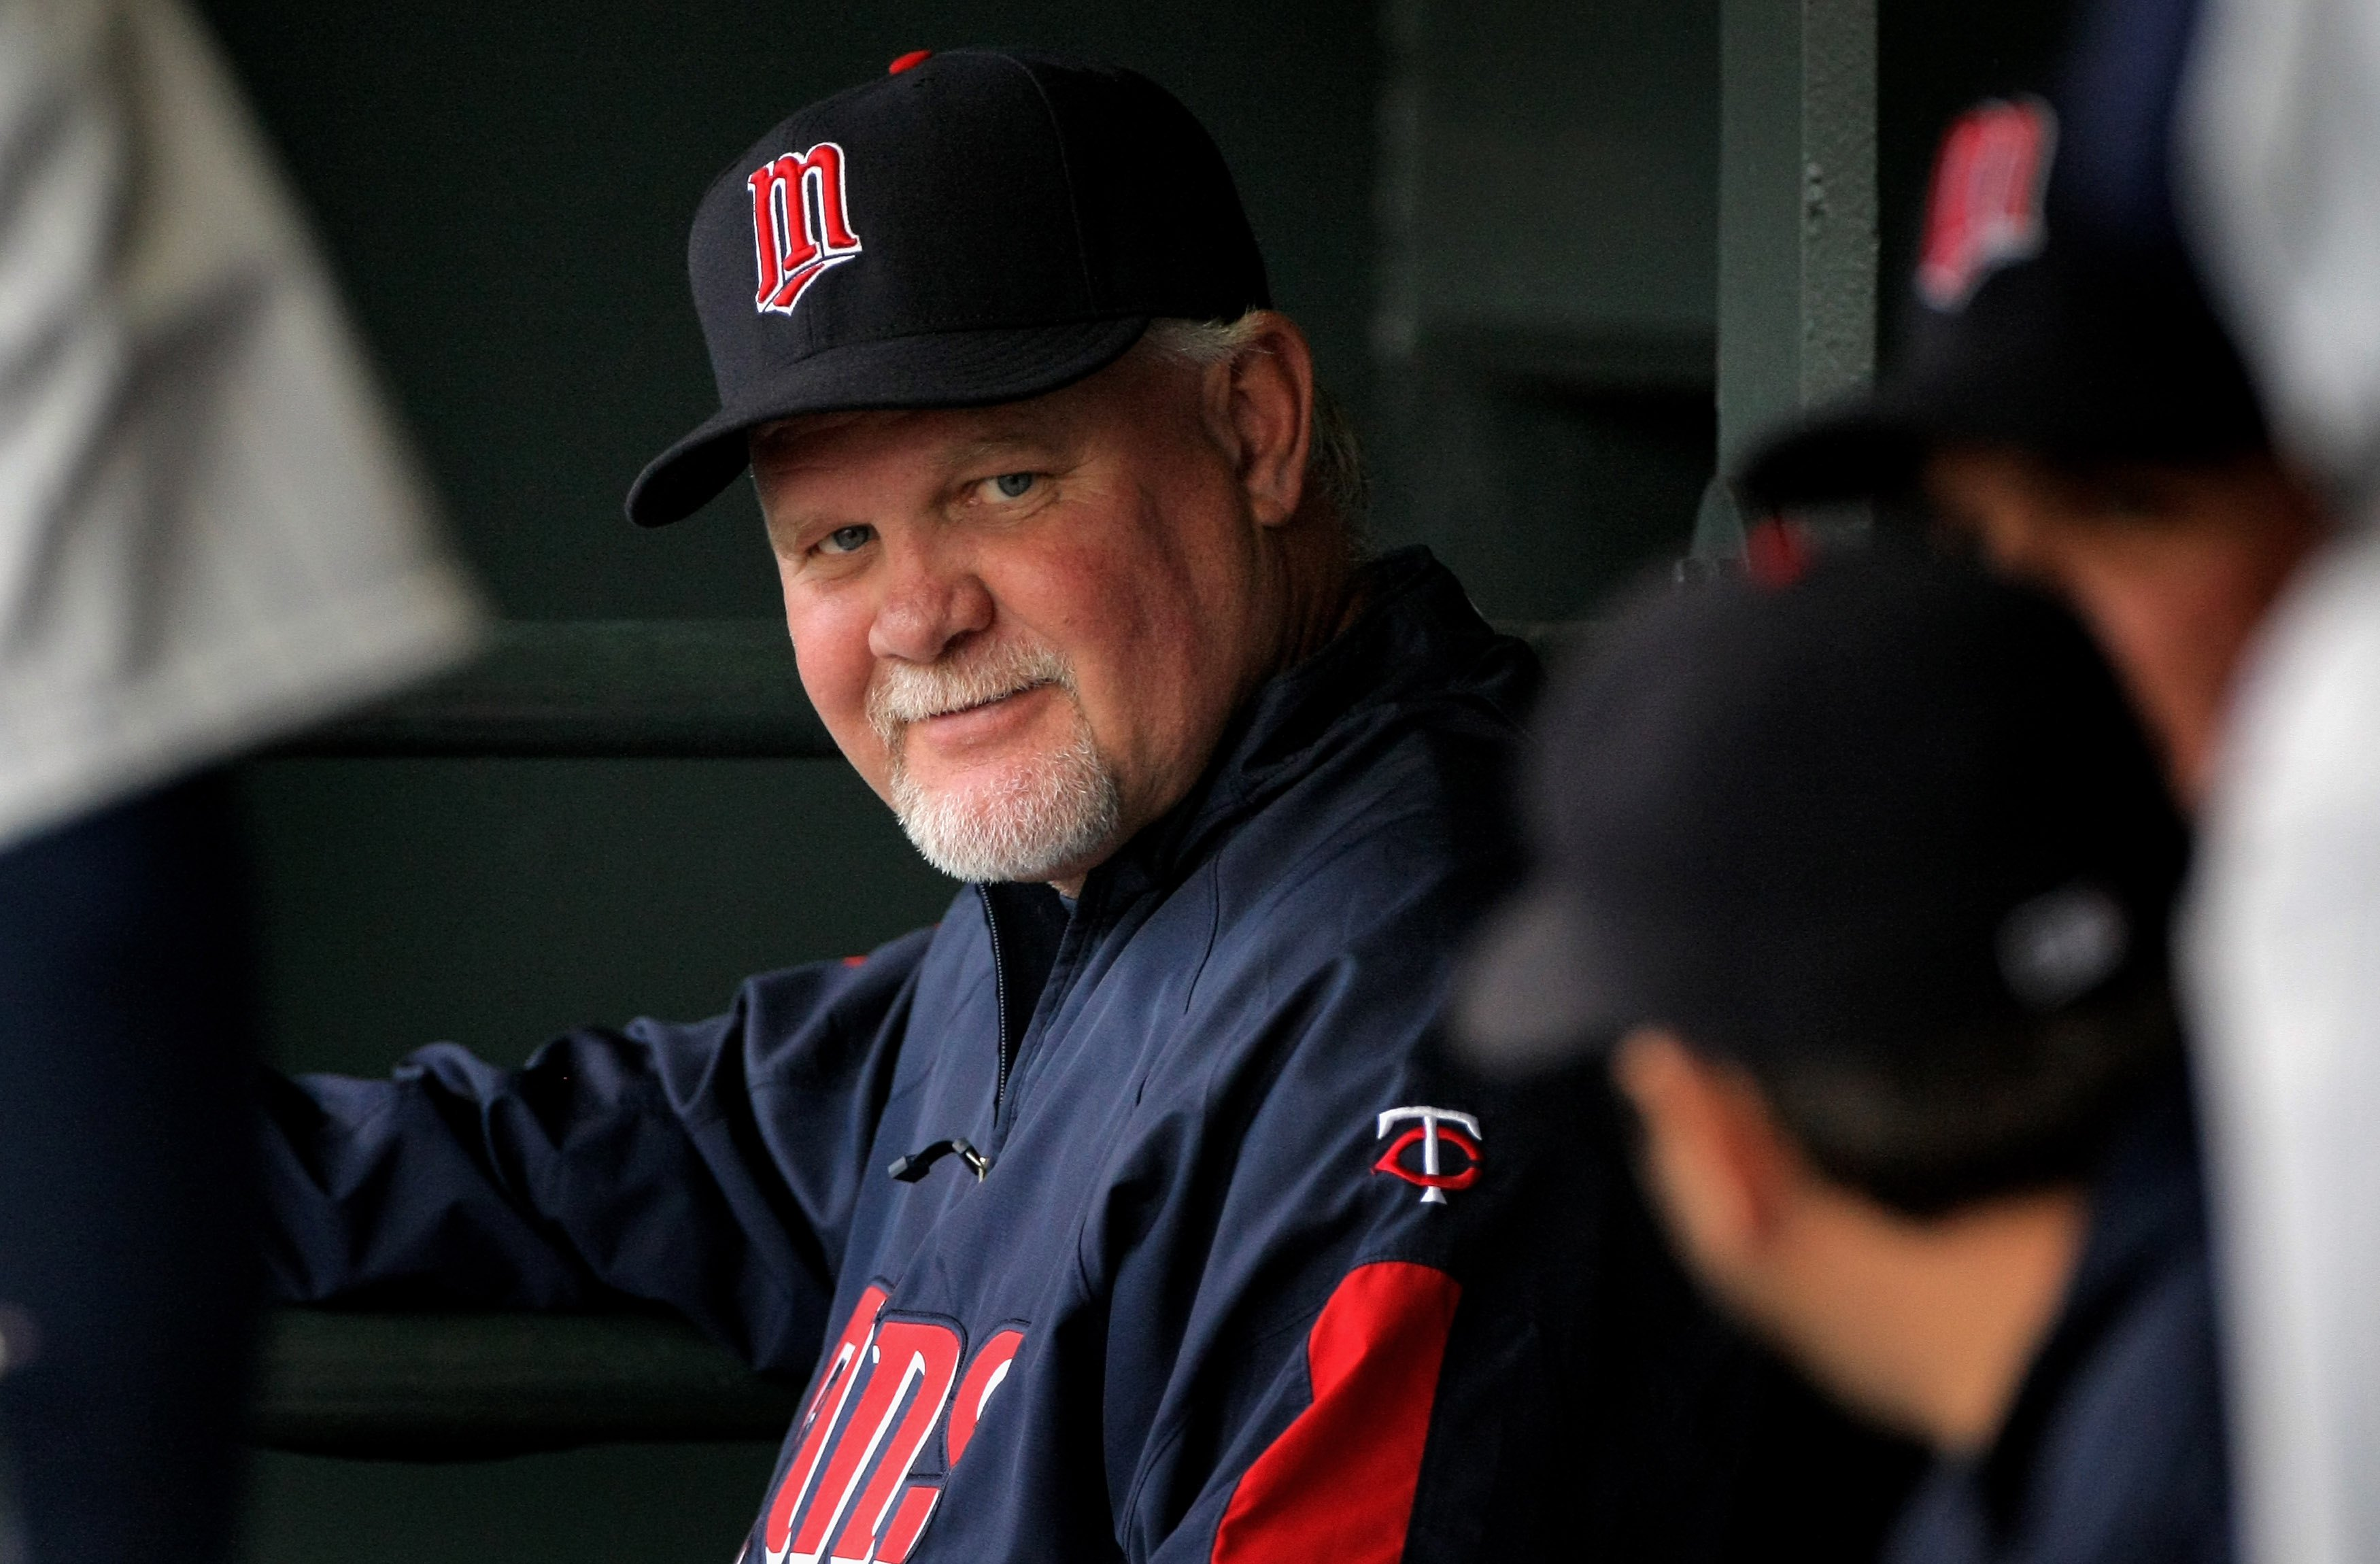 DENVER - MAY 16:  Manager Ron Gardenhire #35 of the Minnesota Twins directs his team against the Colorado Rockies during Interleague MLB action at Coors Field on May 16, 2008 in Denver, Colorado. The Twins defeated the Rockies 4-2.  (Photo by Doug Pensing